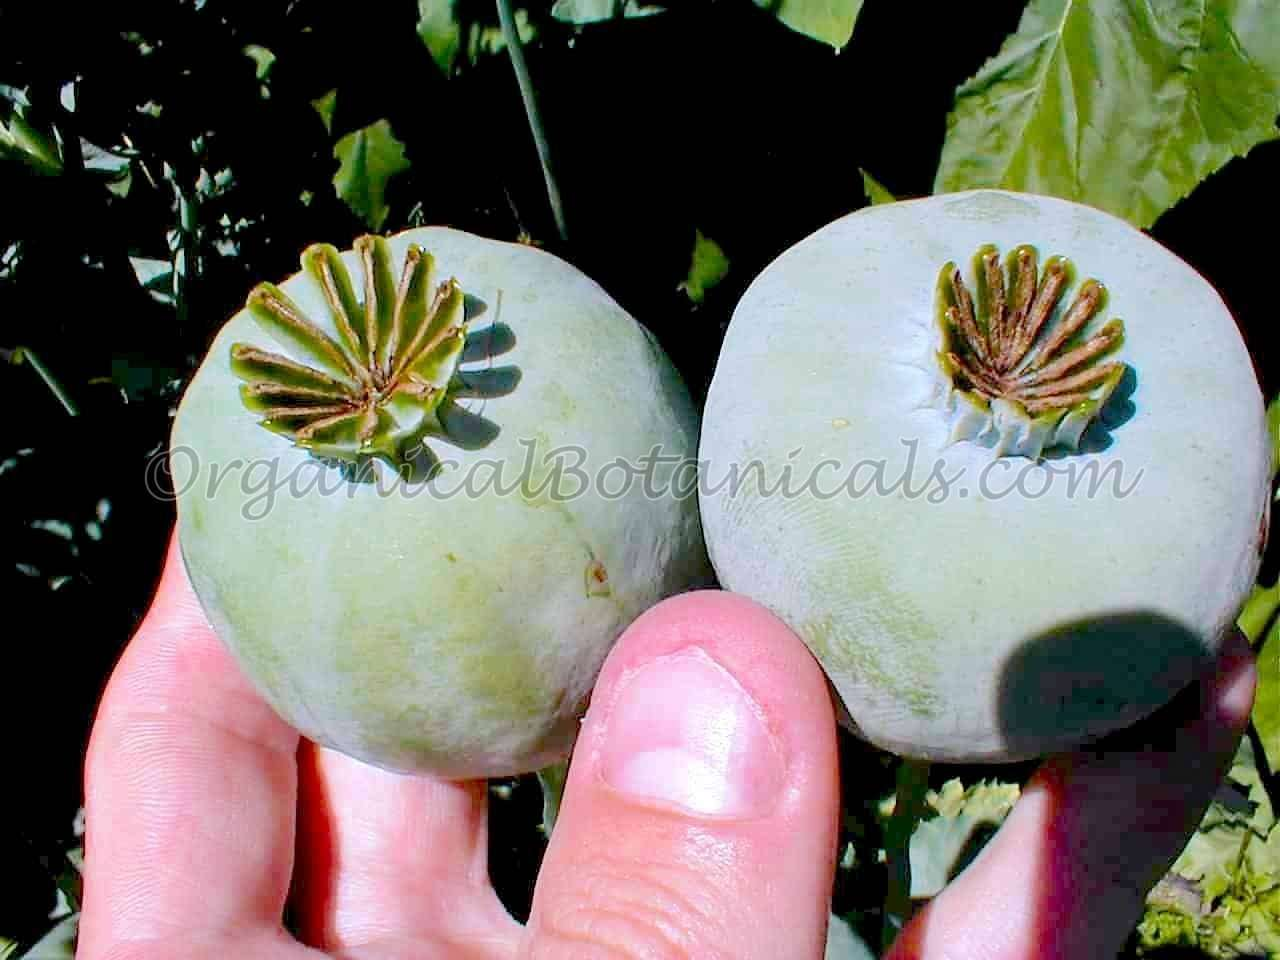 Heirloom White Somniferum Poppy Seed Pods